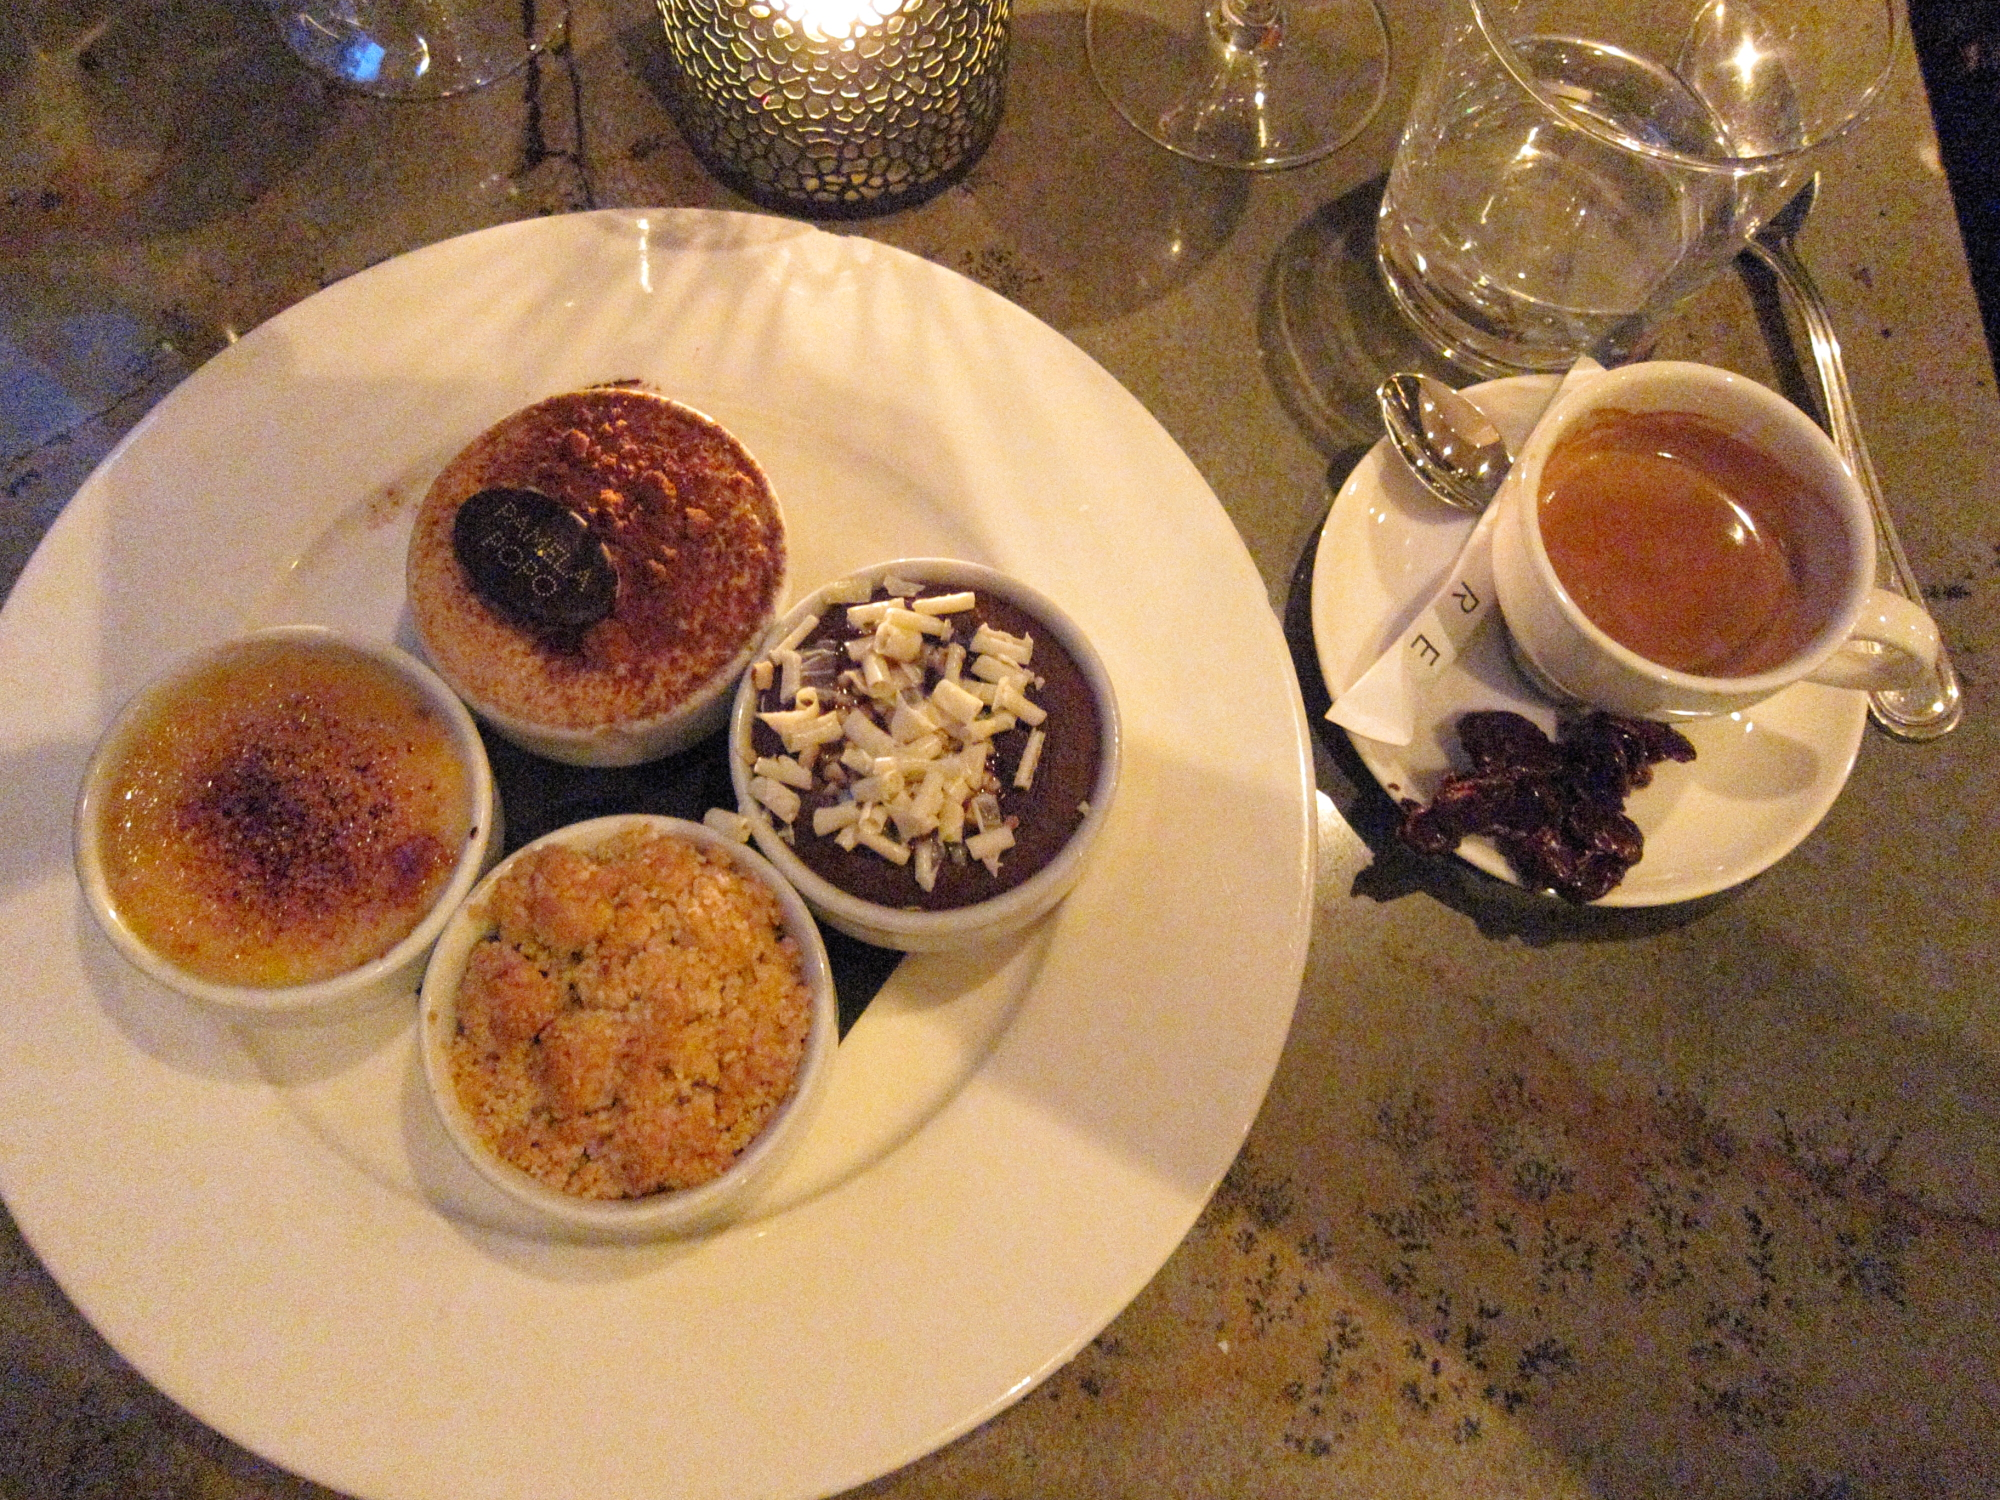 Café gourmand at Pamela Popo in Saint-Paul. The best I've ever had!